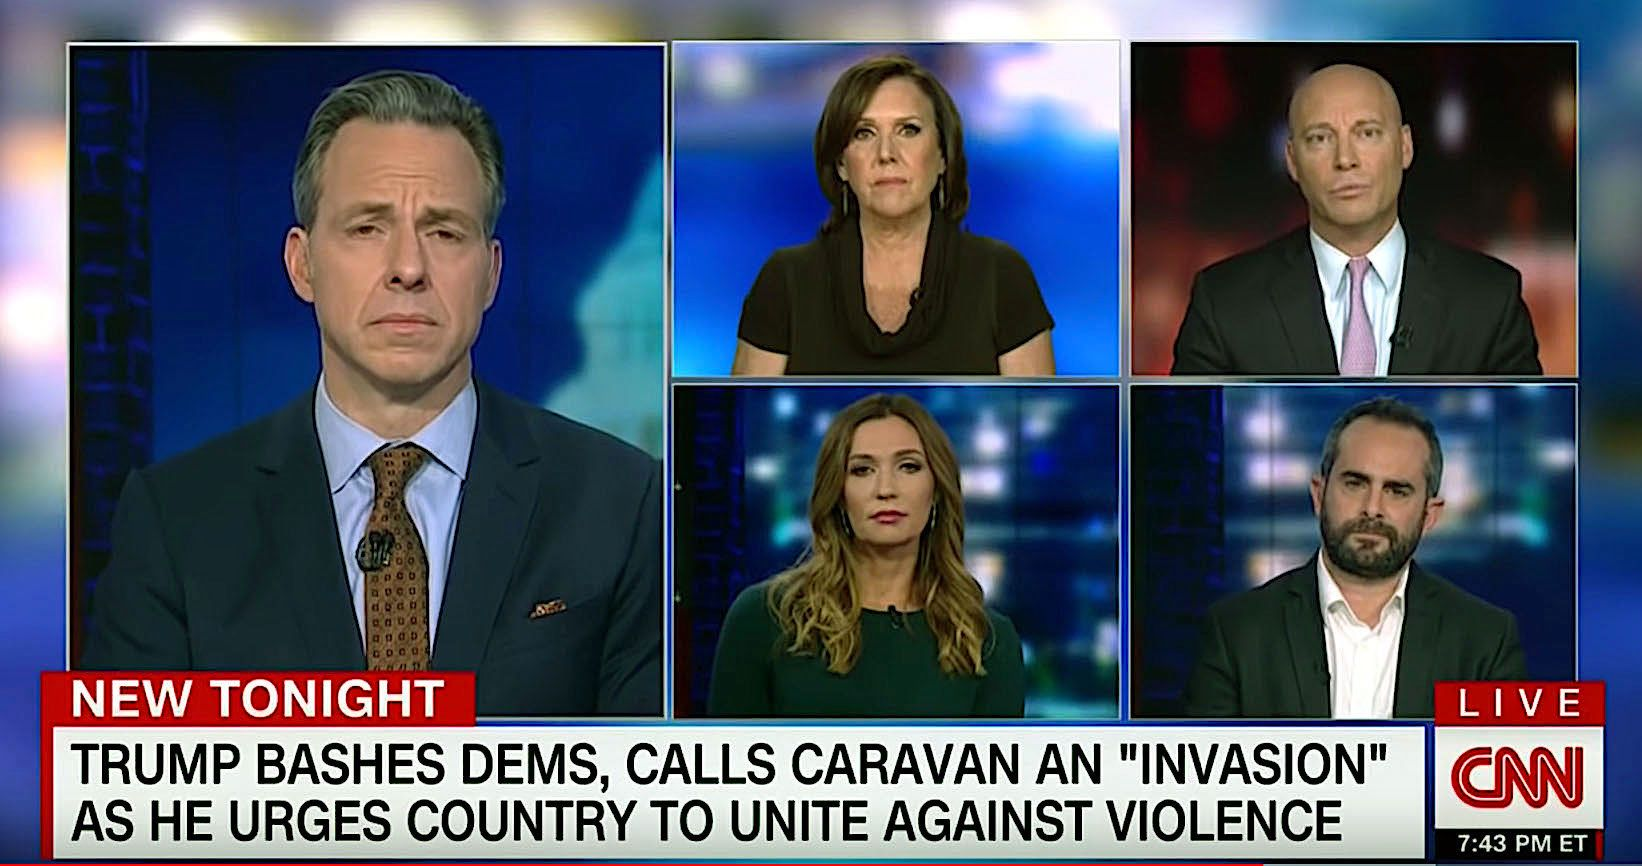 Discussion on CNN about President Donald Trump's rhetoric after the shootings at the Pittsburgh synagogue.